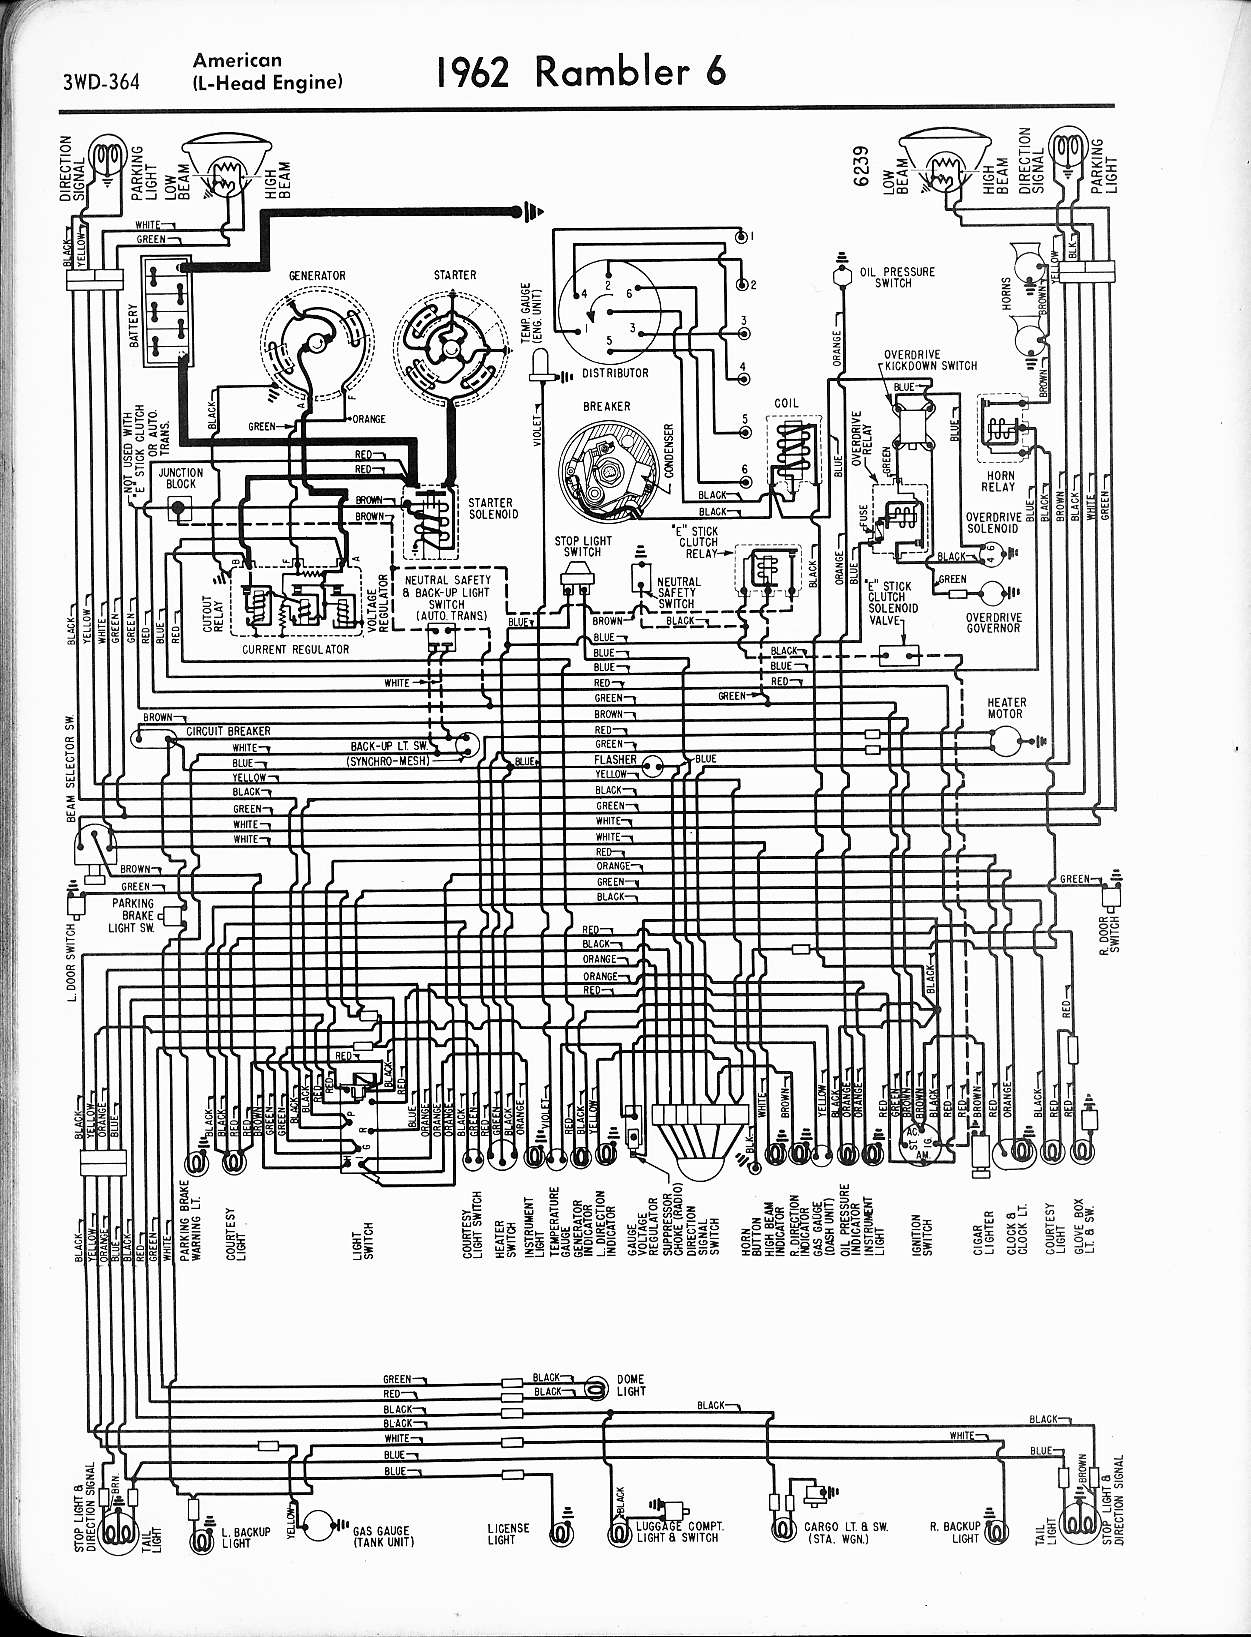 1968 Amx Wiring Diagram Diy Enthusiasts Diagrams Amc Javelin Circuit Wire Center U2022 Rh 107 191 48 154 1970